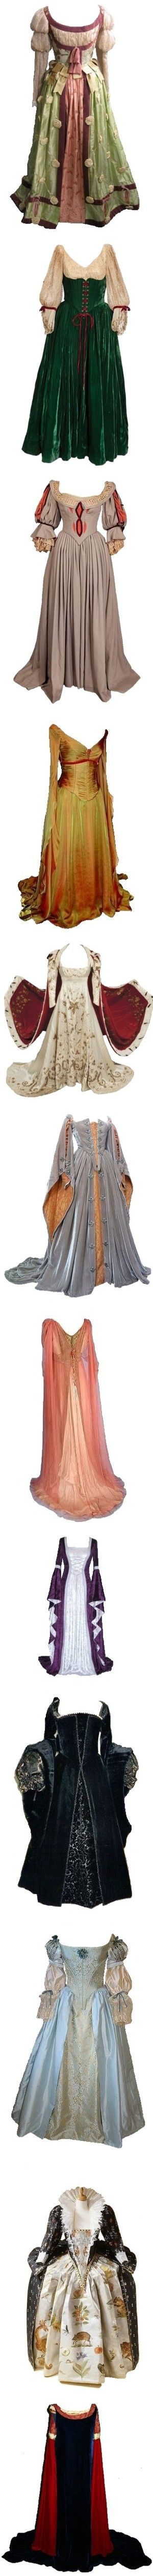 Medieval and Renaissance Inspired Fashions pt 6 by roseredrum on Polyvore featuring dresses, gowns, long dress, medieval, costume, costumes, medieval dresses, historical, long dresses and epoca